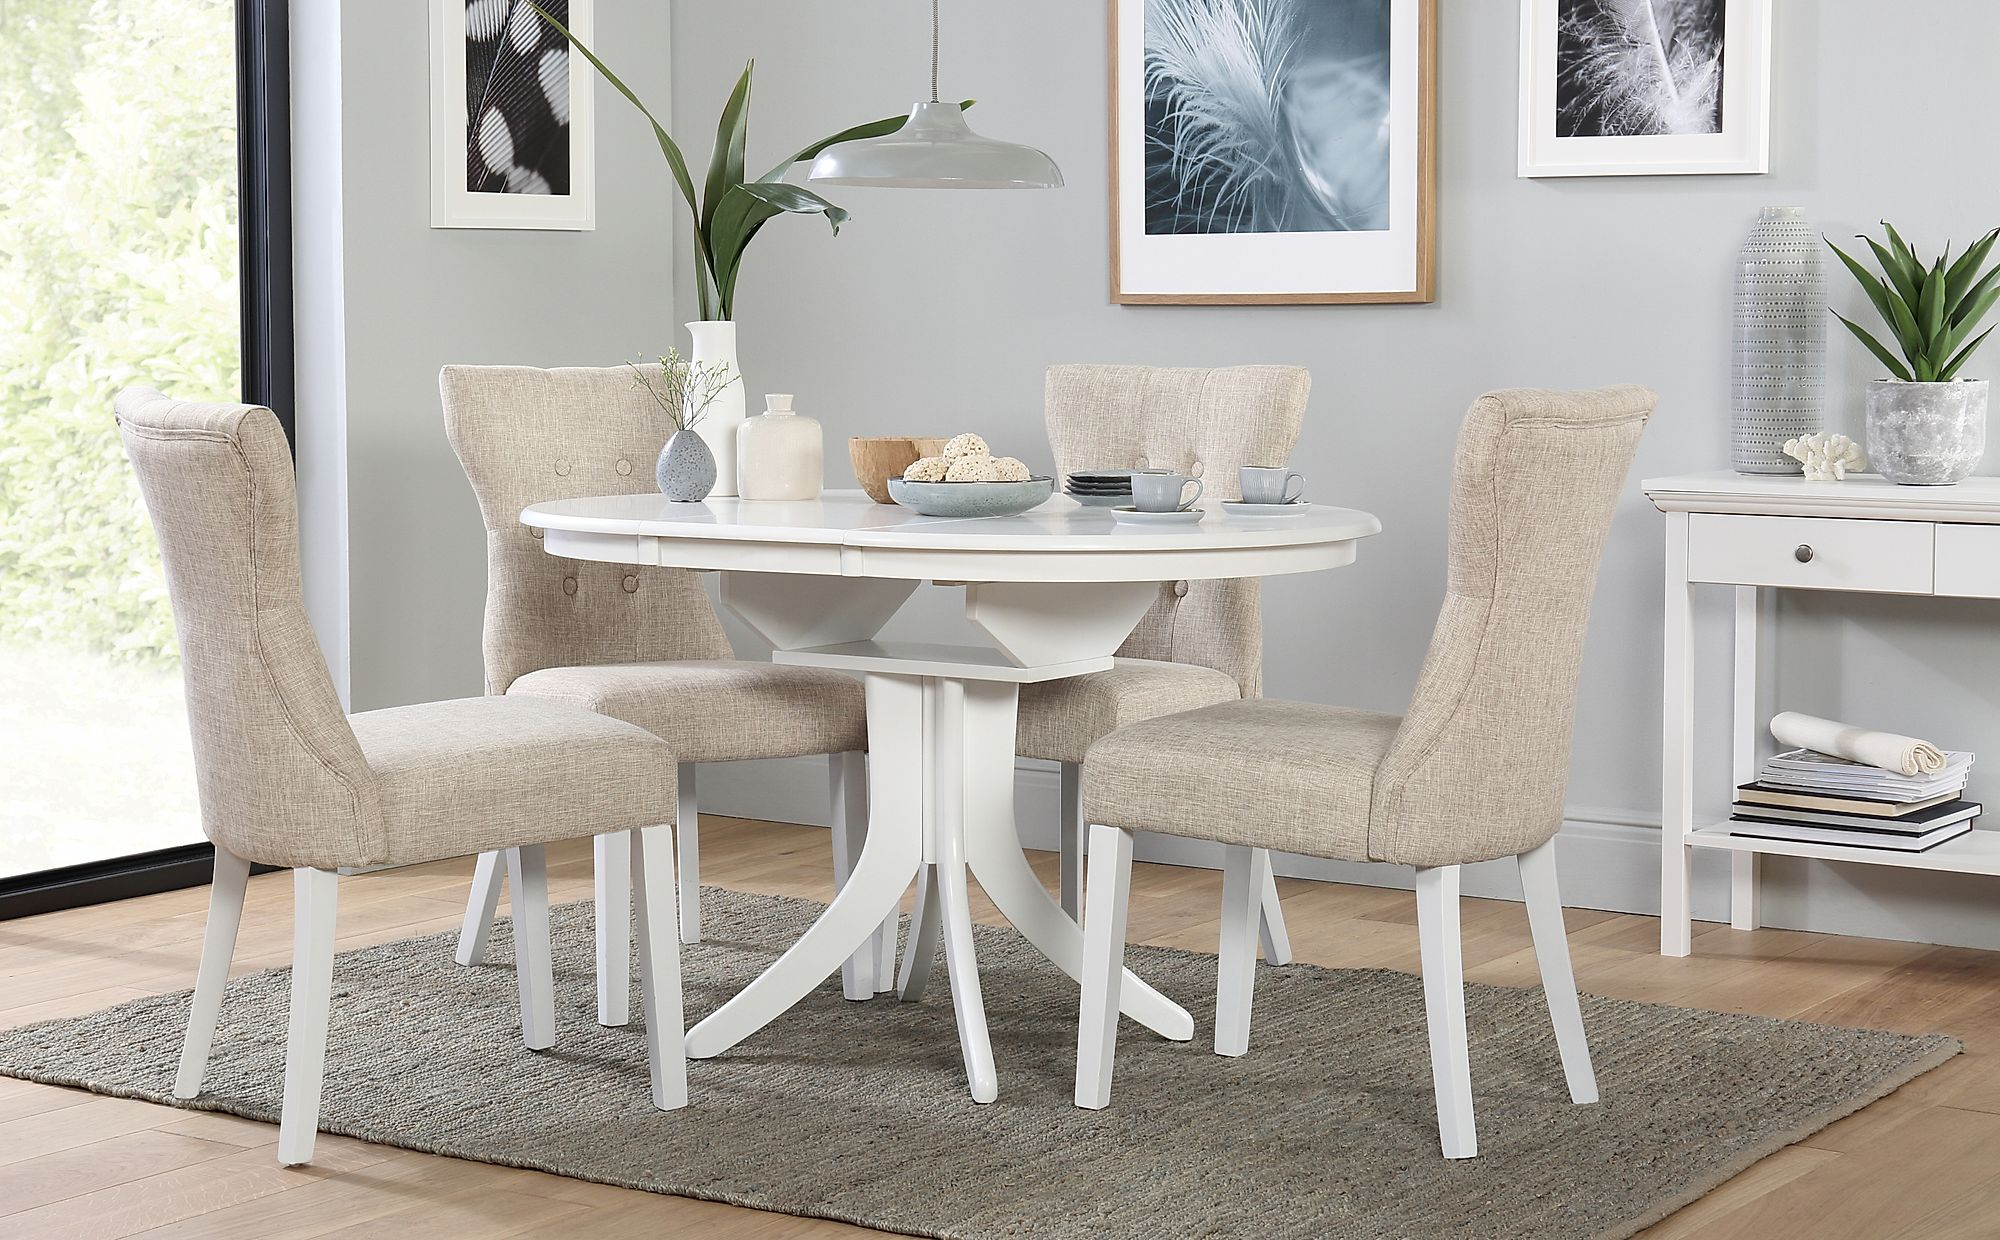 hot sale online c1459 d52eb Hudson Round White Extending Dining Table - with 4 Bewley Oatmeal Chairs